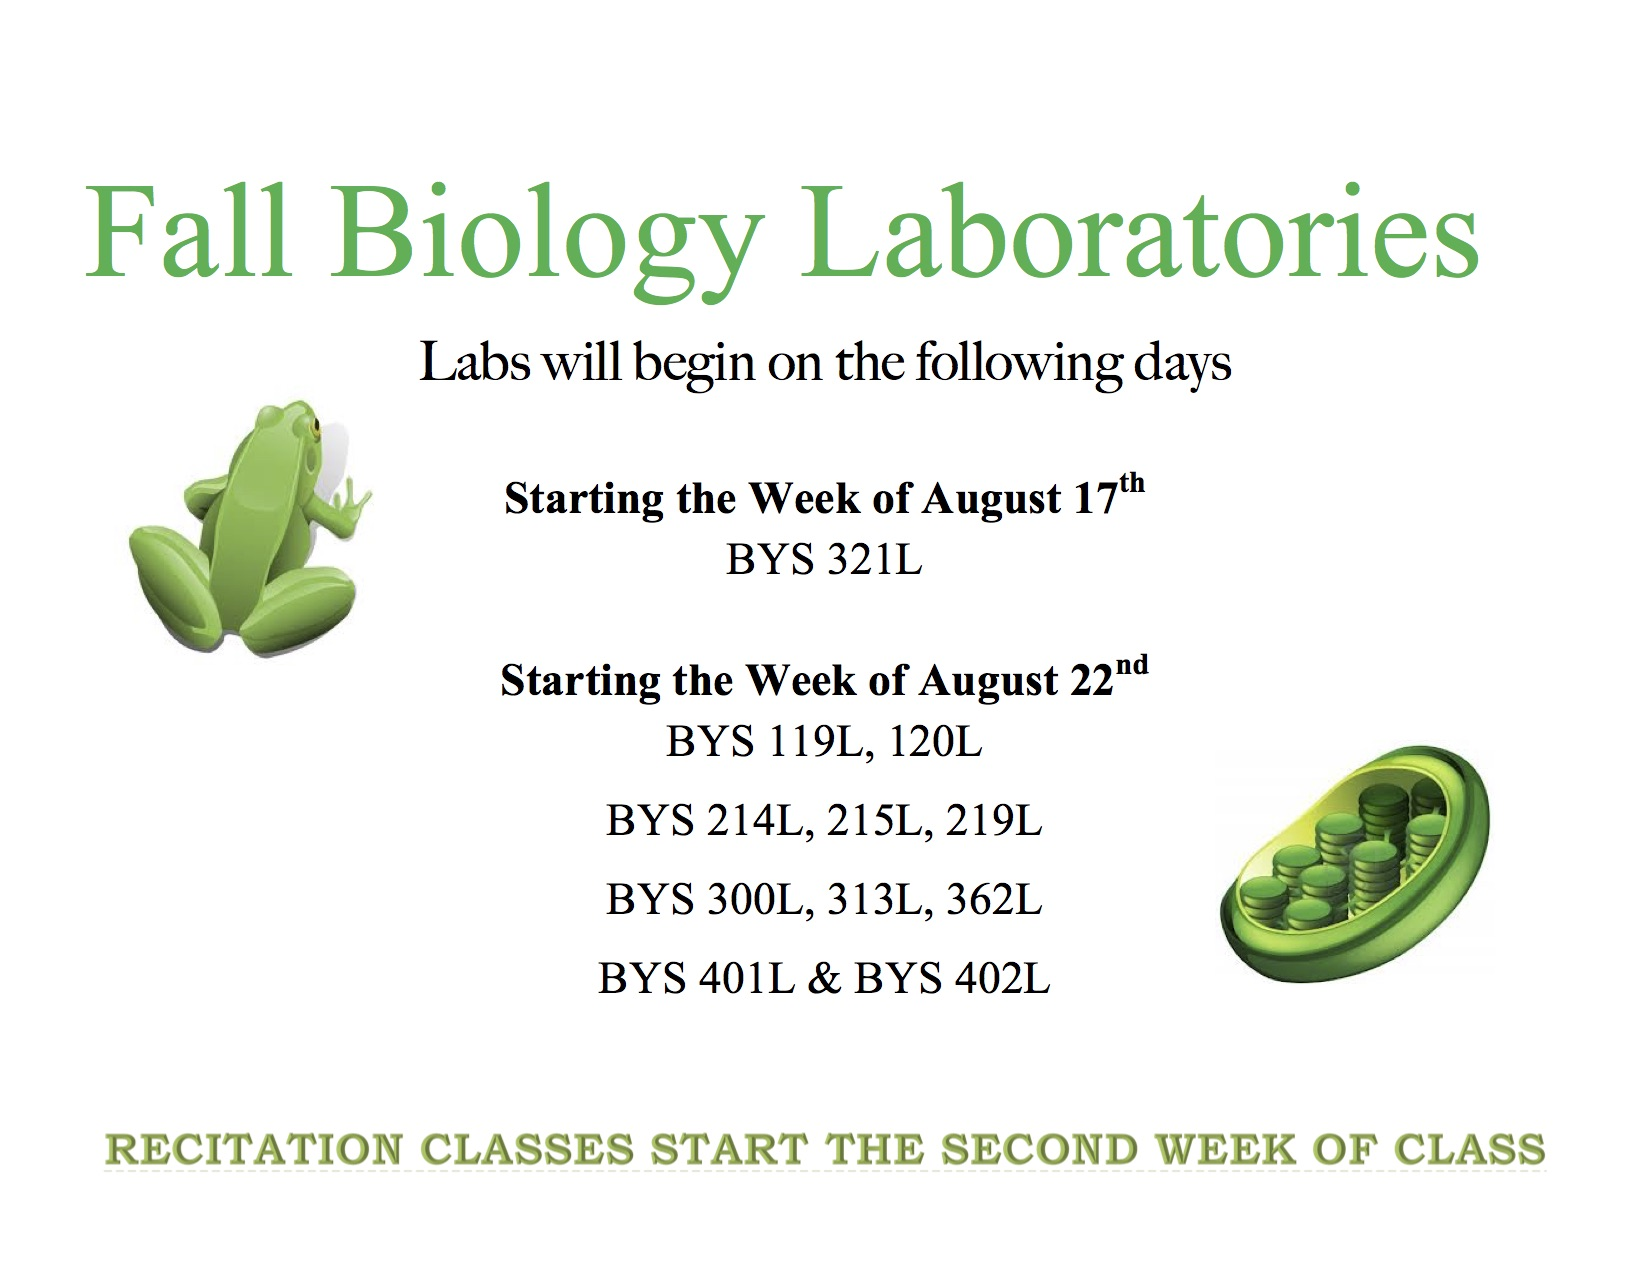 fall biology laboratories start 1